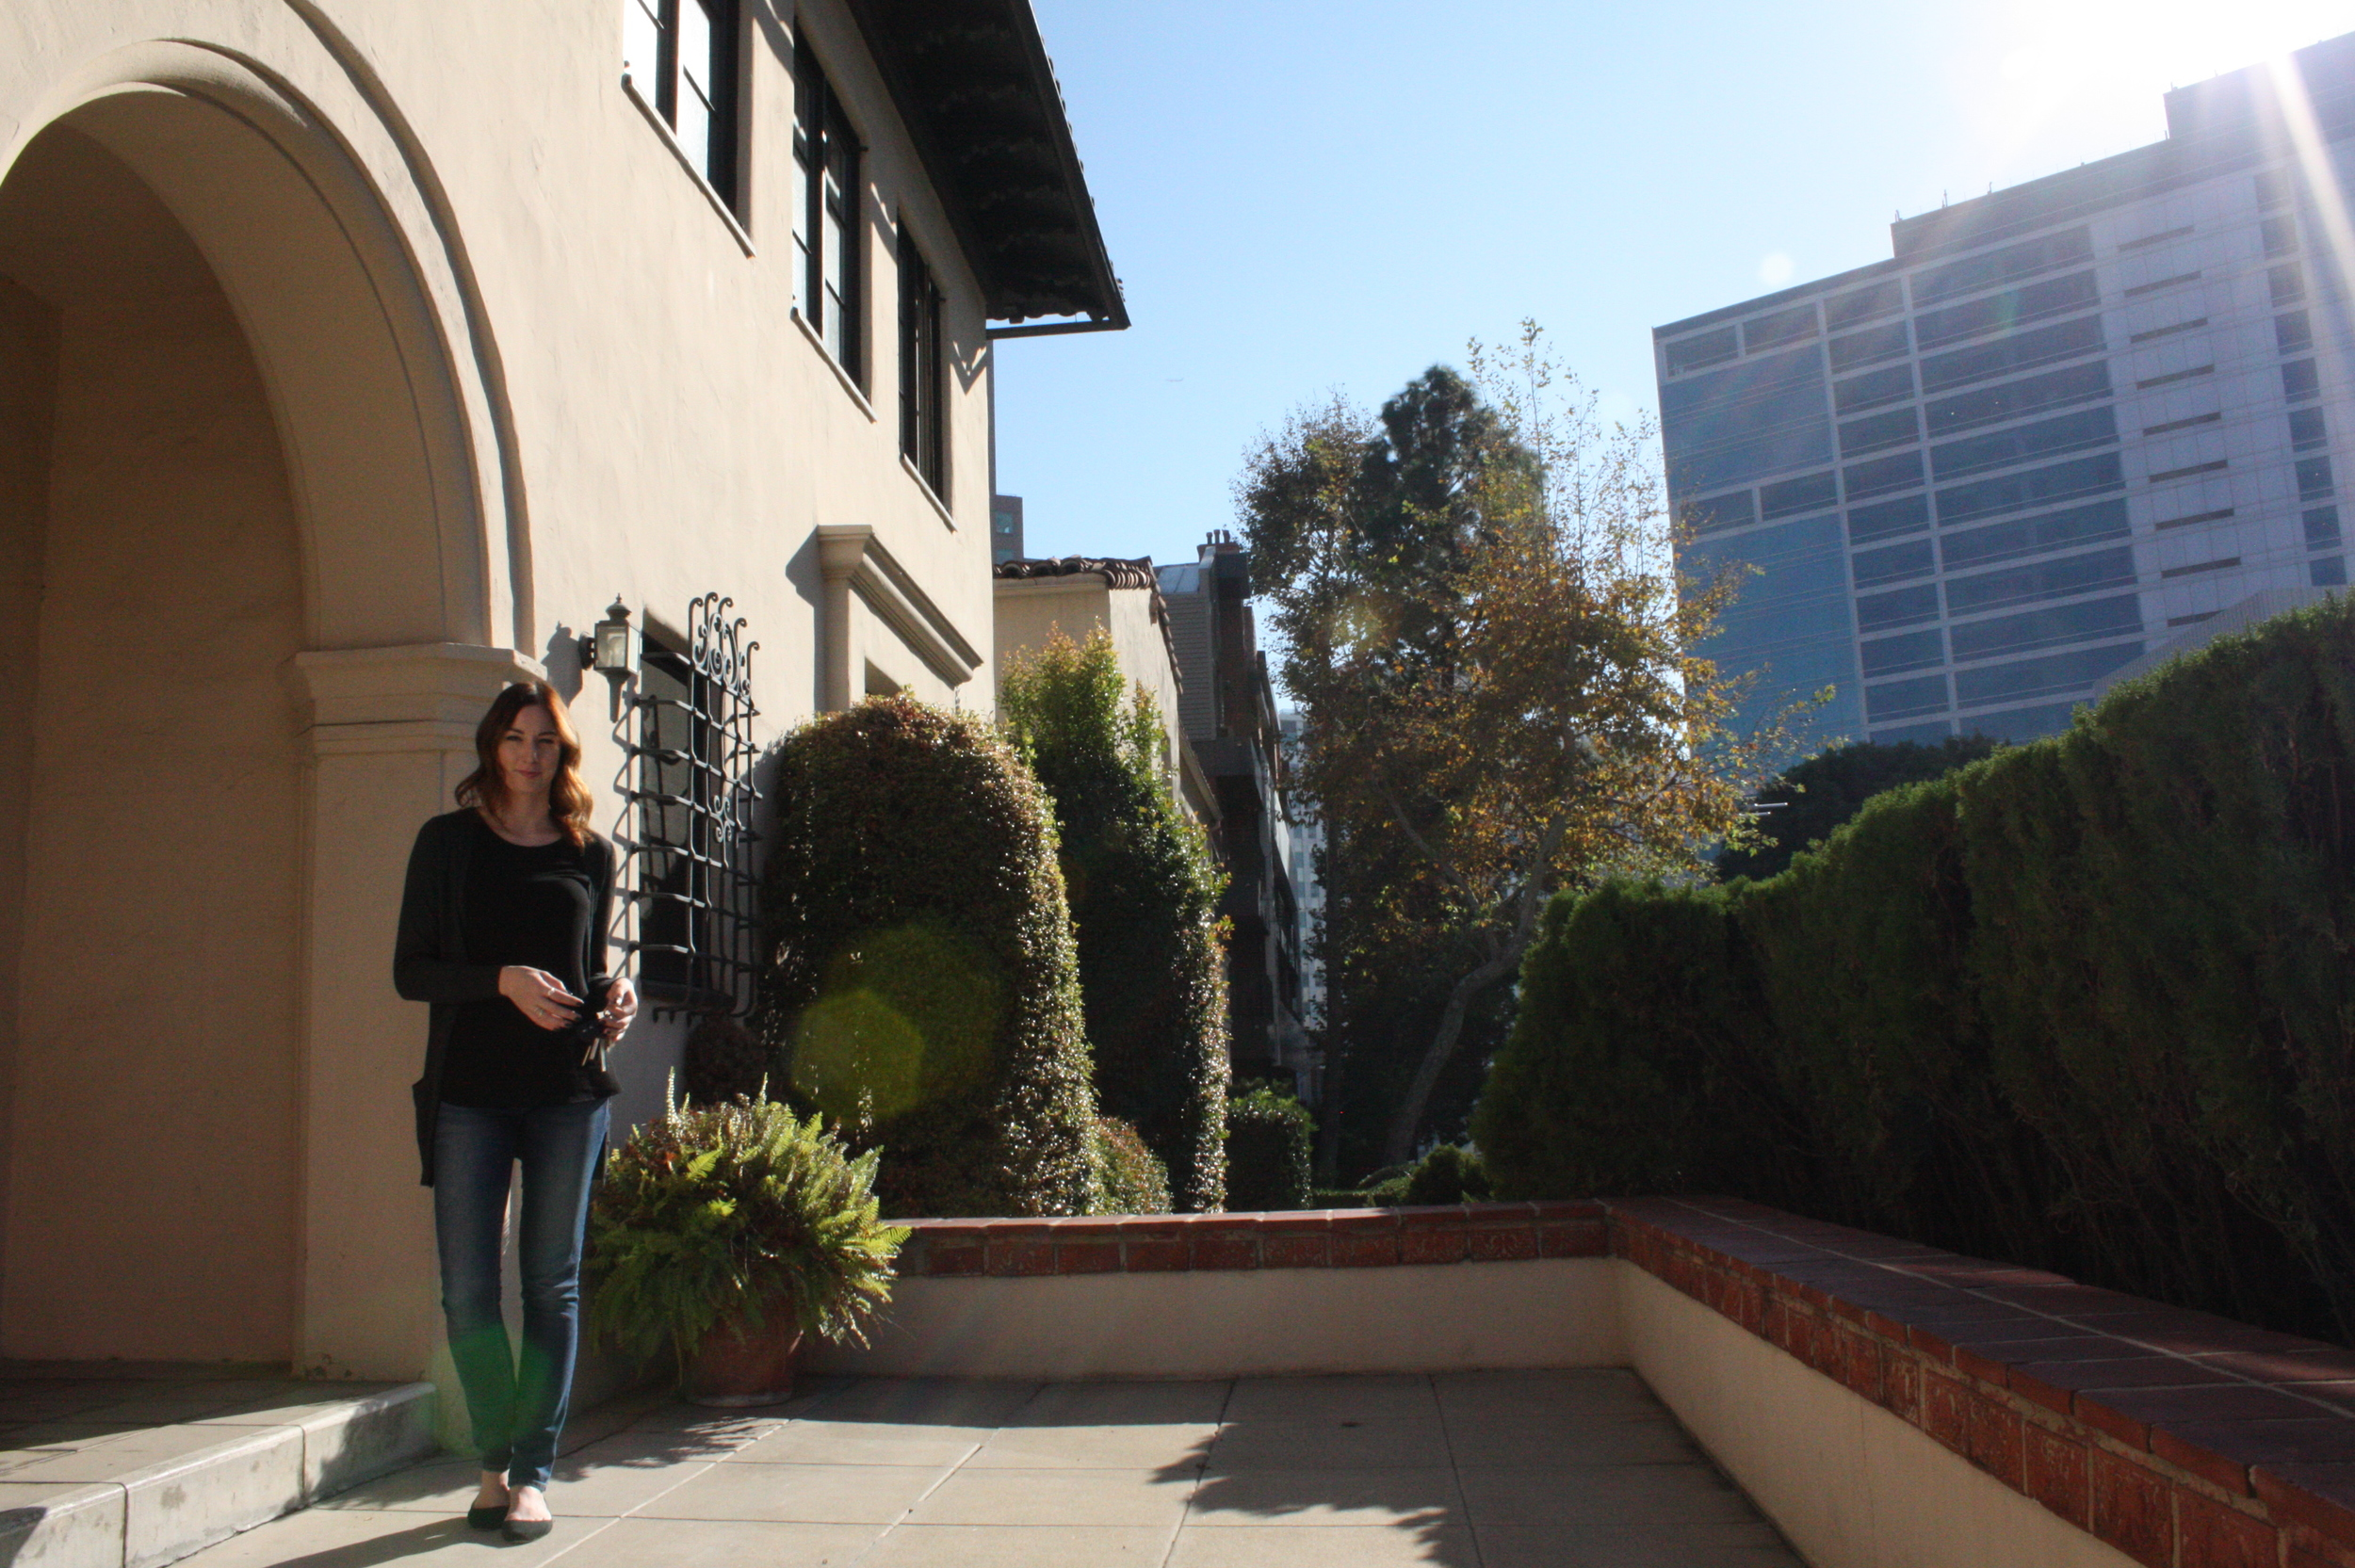 From her porch, you can see the building where she first worked when she came to LA.